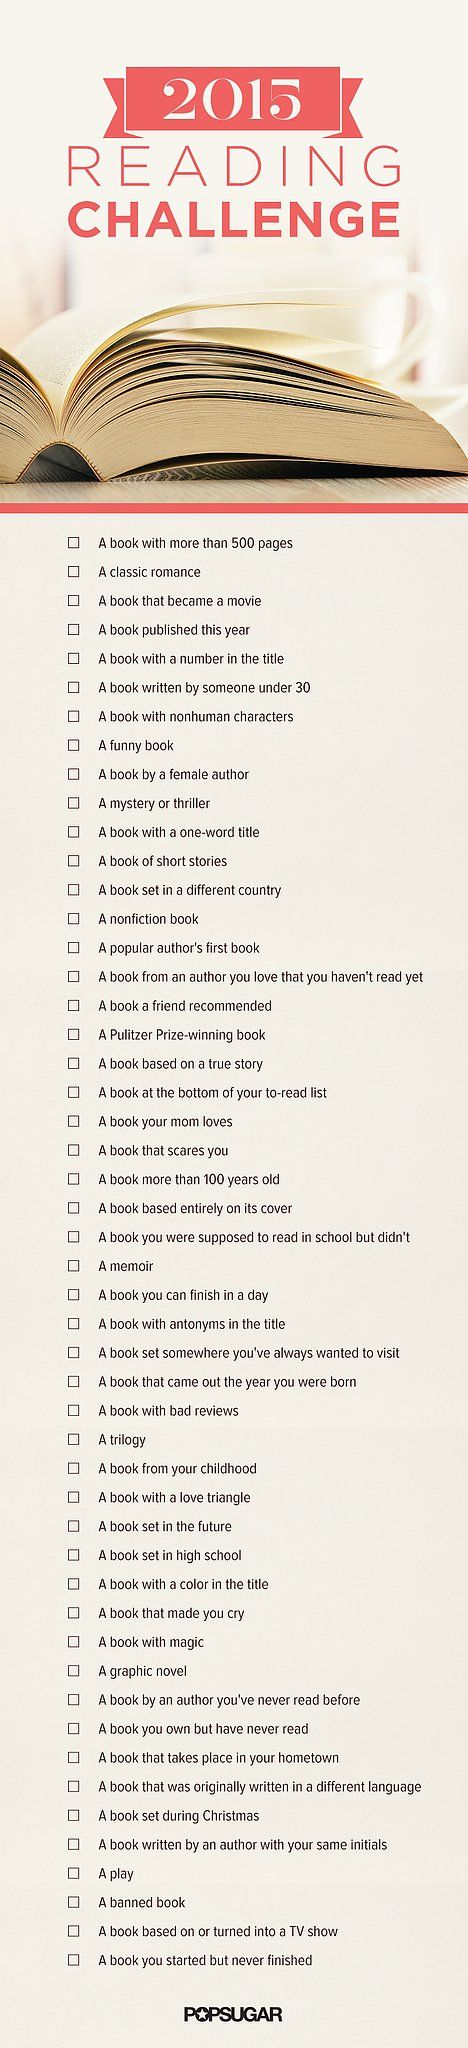 "Lot of these are ""every book will read this year"" - especially ""A book you own but haven't read yet"""